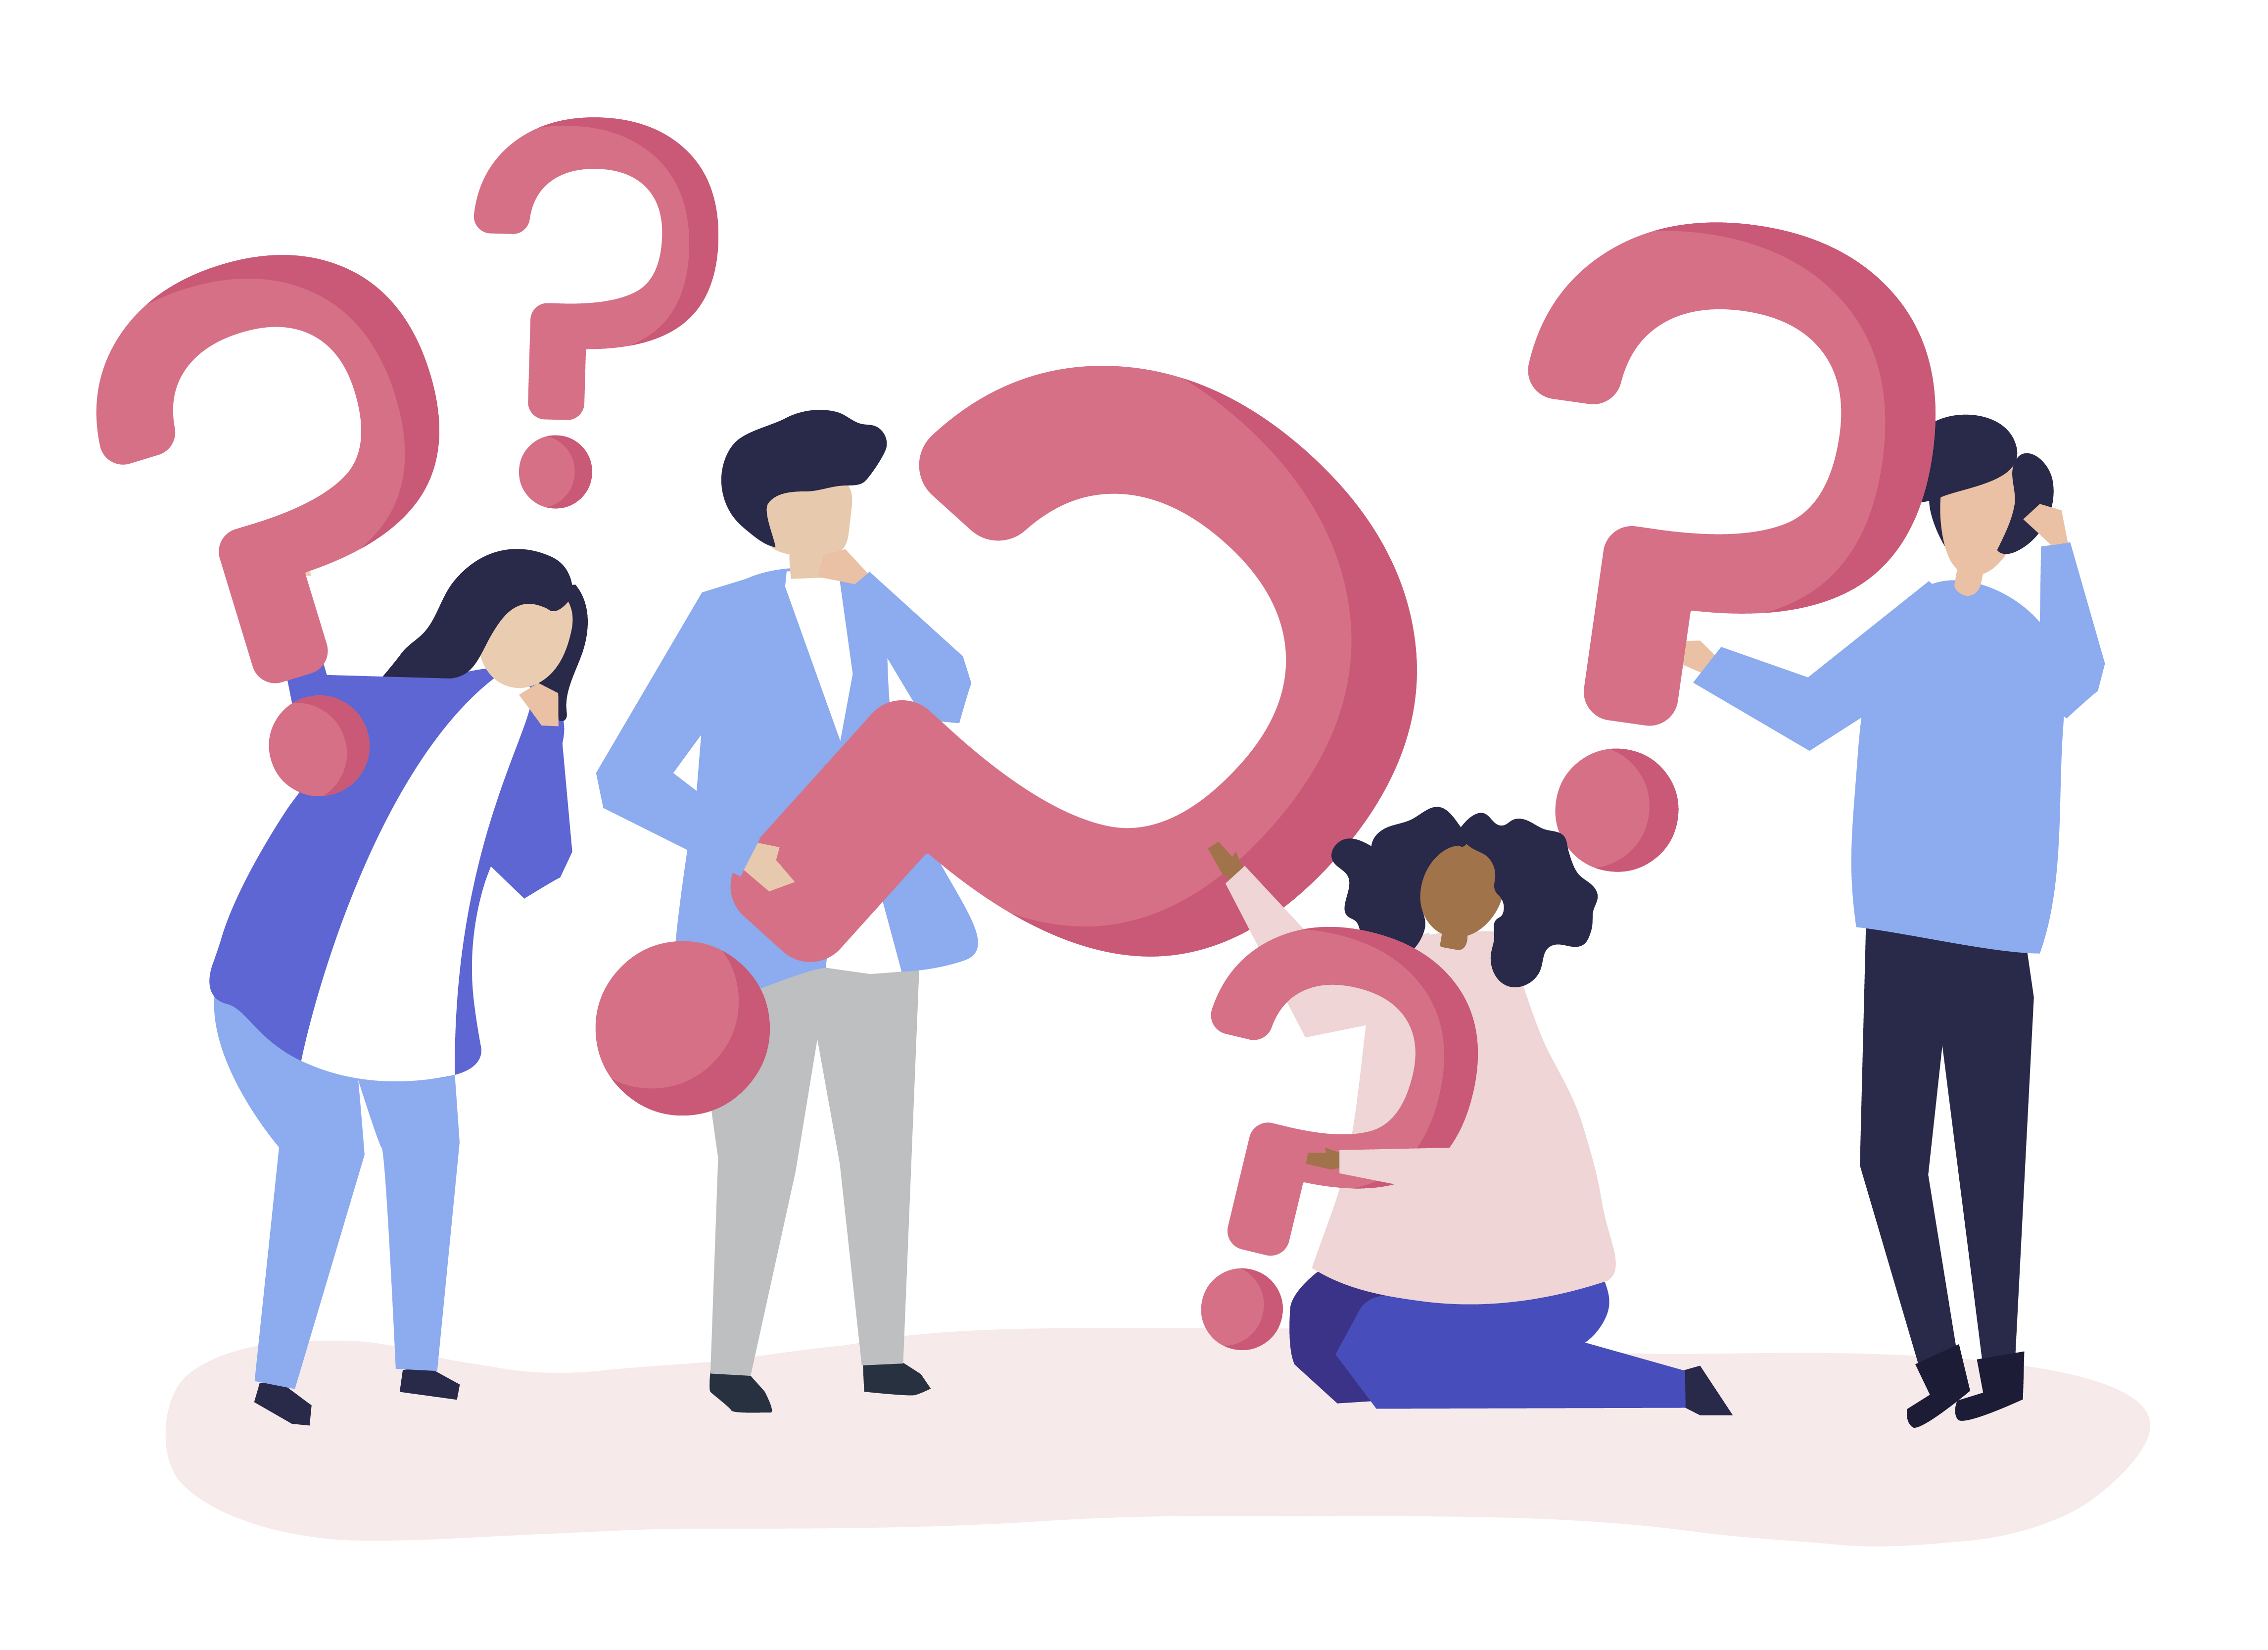 https://www.freepik.com/free-vector/group-people-holding-question-mark-icons_3530048.htm